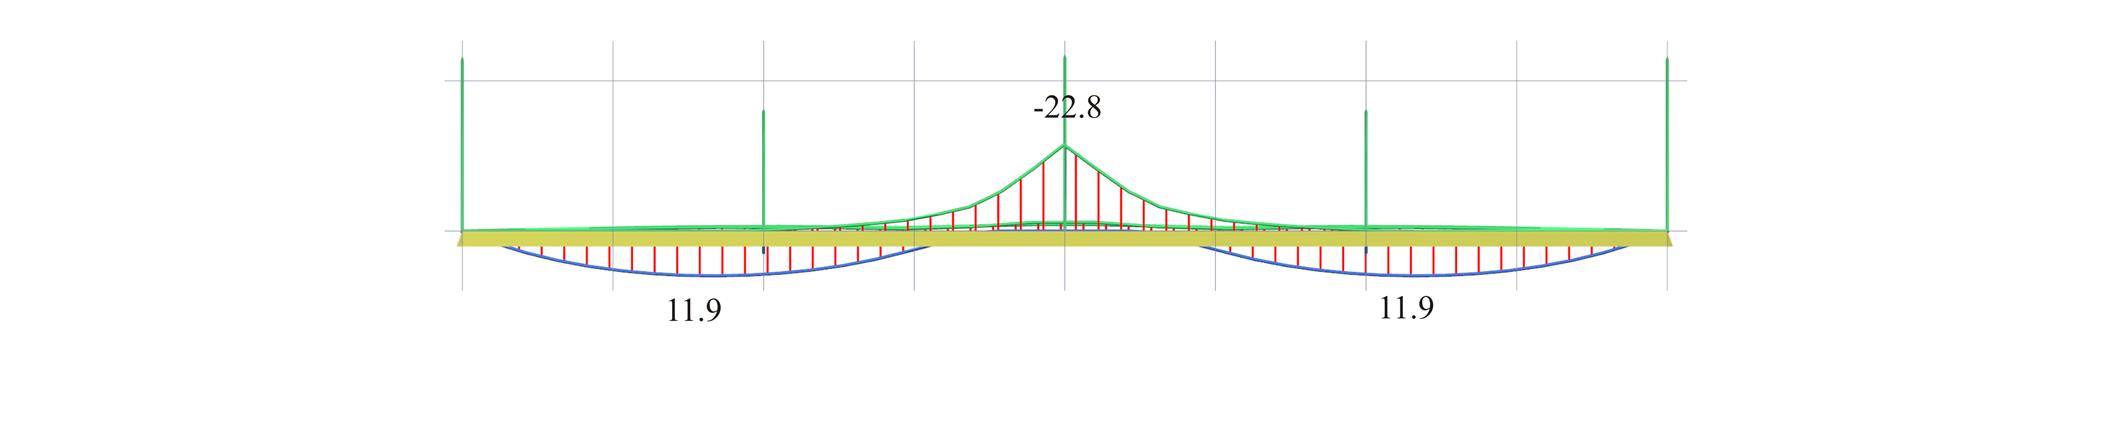 Example 3 Buildinghowcom Beam Moment Diagrams Figure 423 34 Front View Of The 3d Bending Corresponding To Envelope Mx